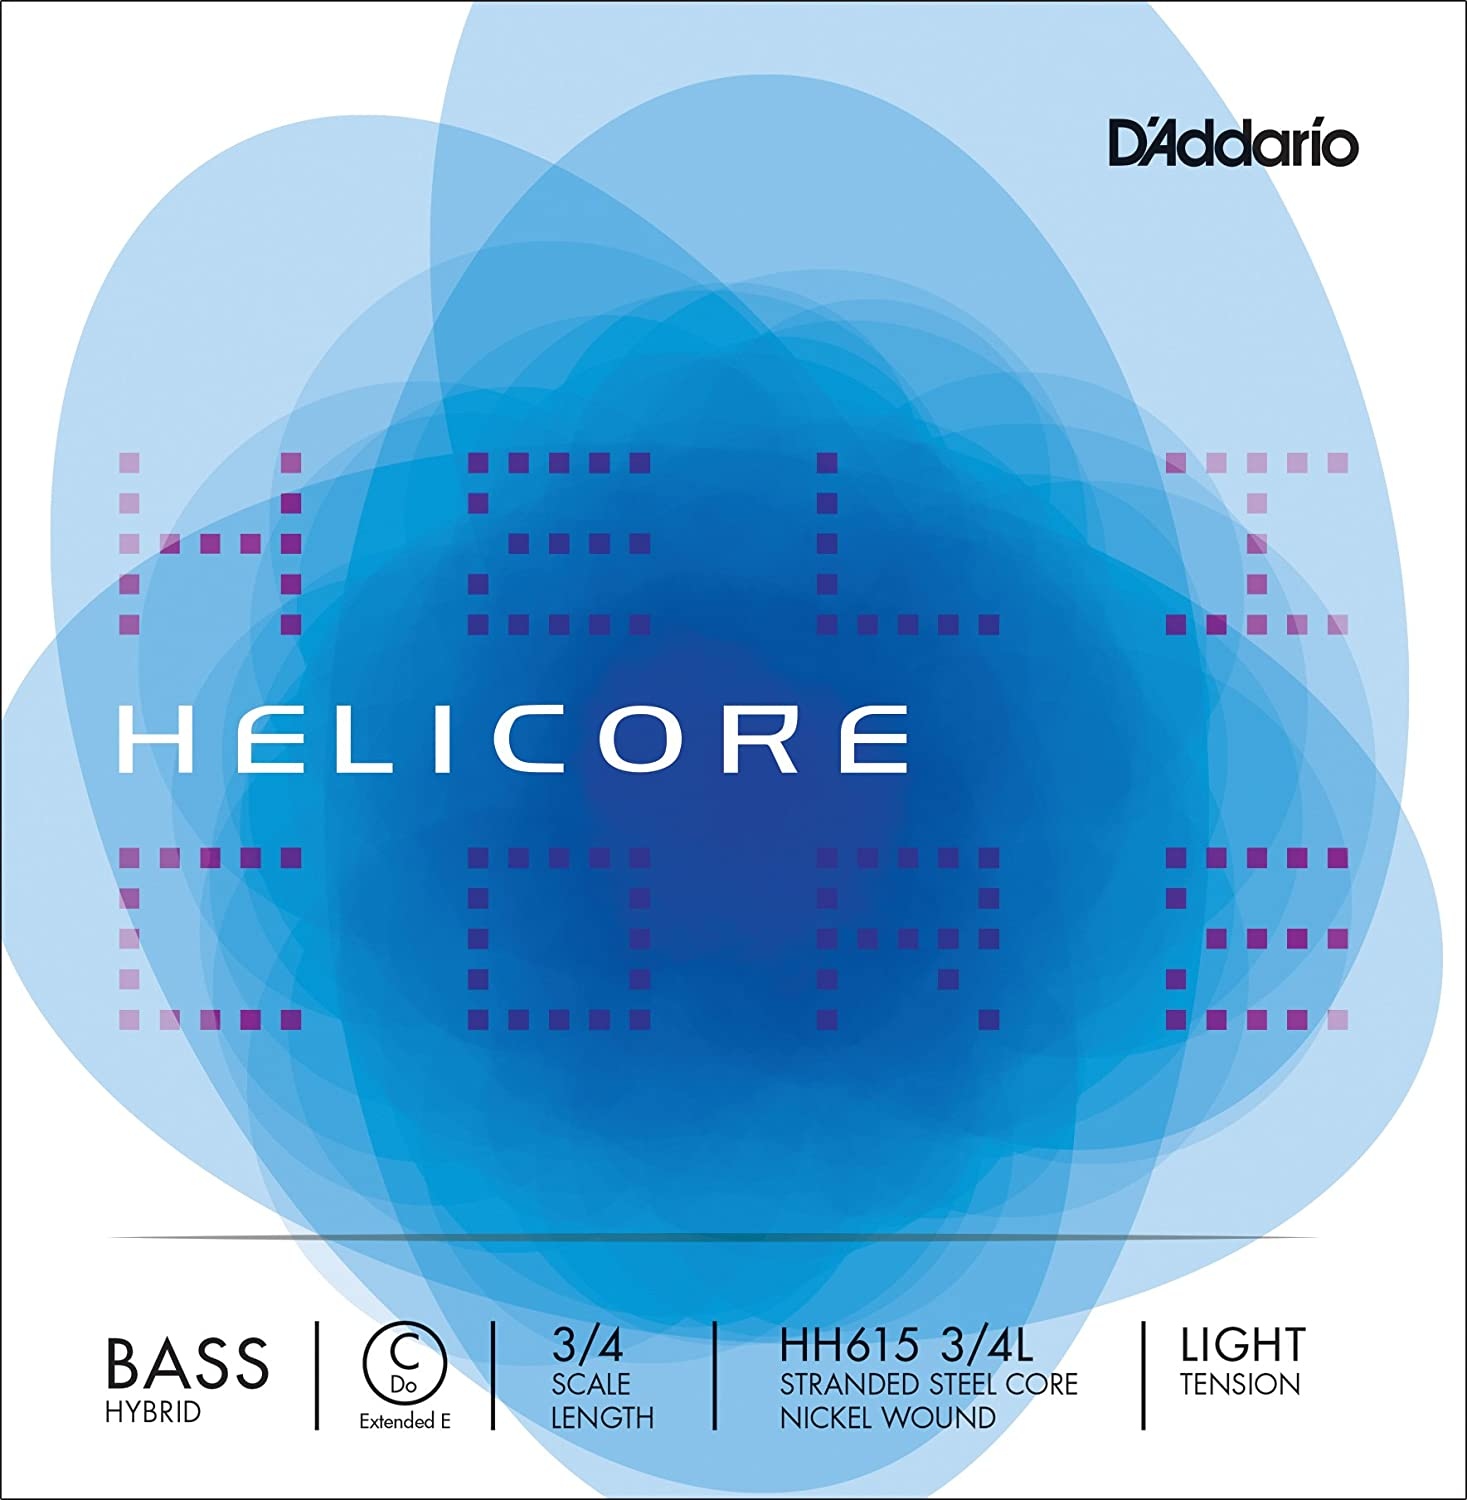 D'Addario Helicore Hybrid Bass Single C (Extended E) String, 3/4 Scale, Medium Tension D'Addario HH615 3/4M